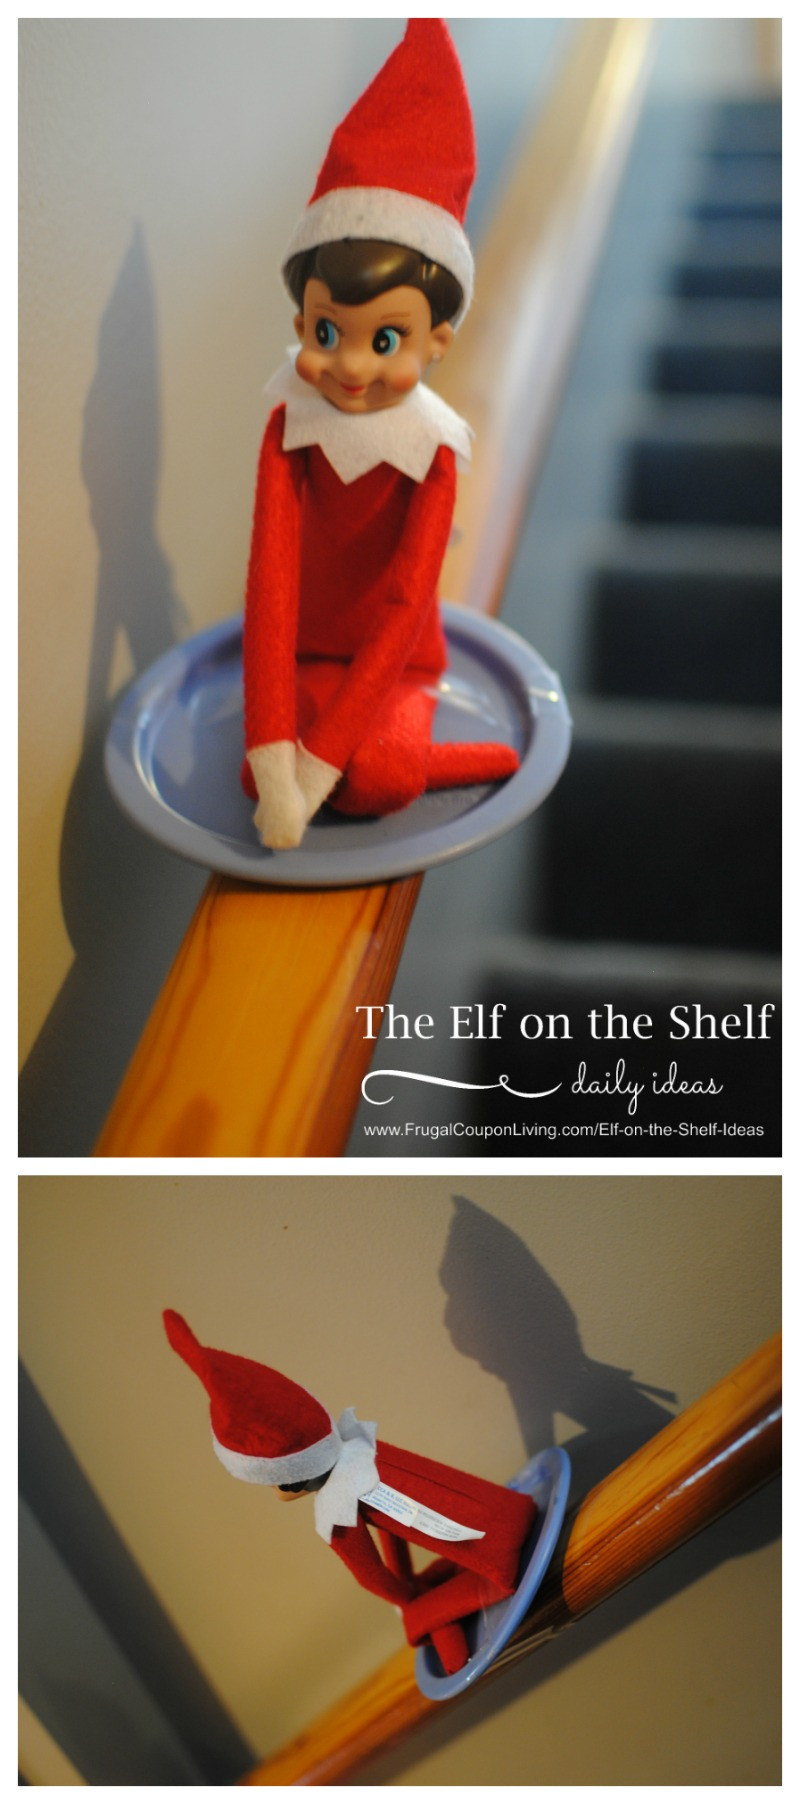 Elf-on-the-Shelf-Ideas-Elf-Saucer-Collage-Frugal-Coupon-Living